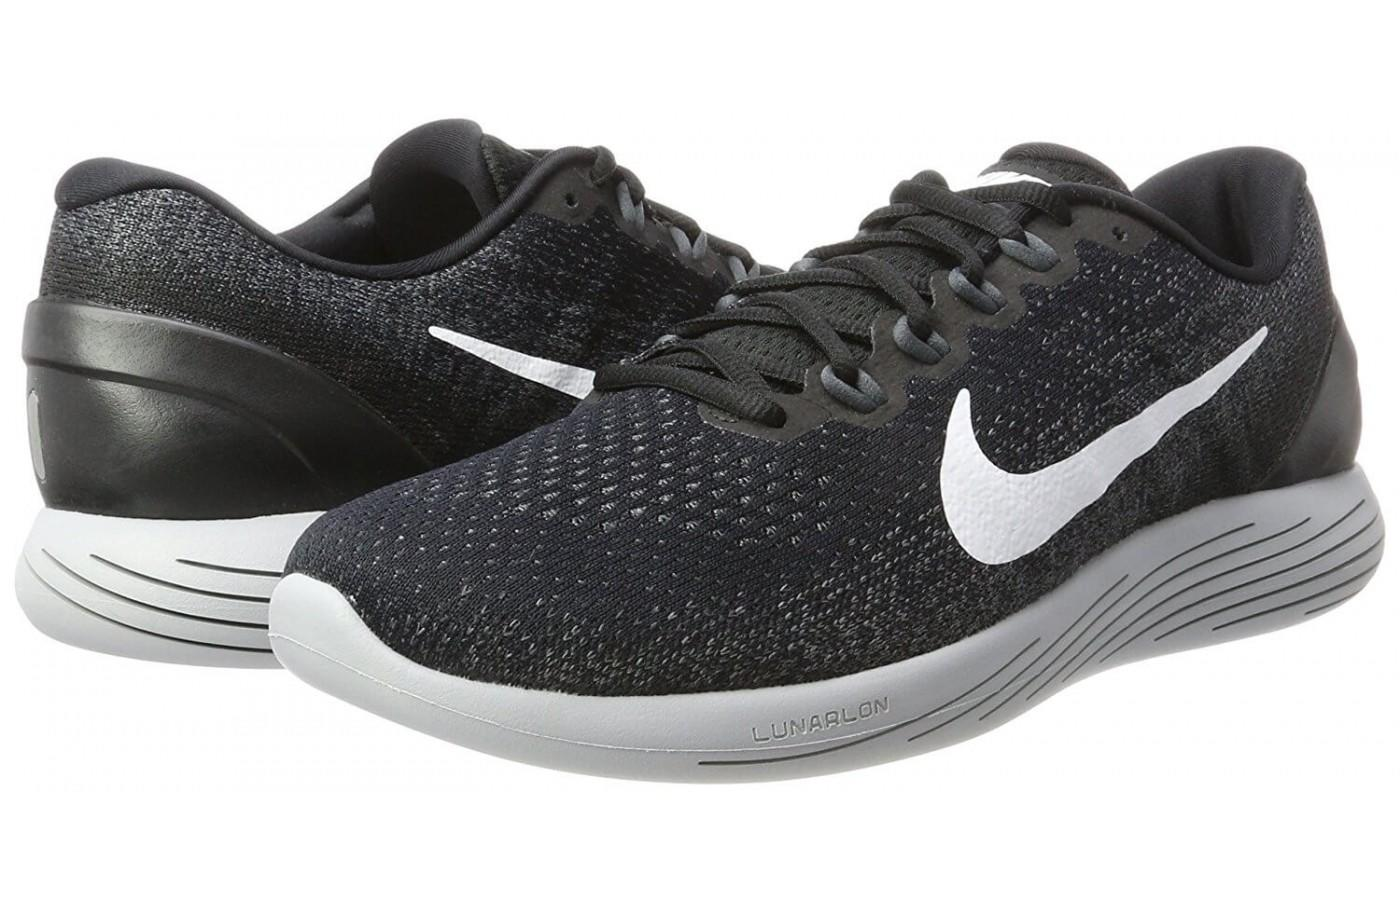 cf87421f9966d ... the Nike Lunarglide 9 is a comfortable stability shoe that both  overpronators and neutral runners can